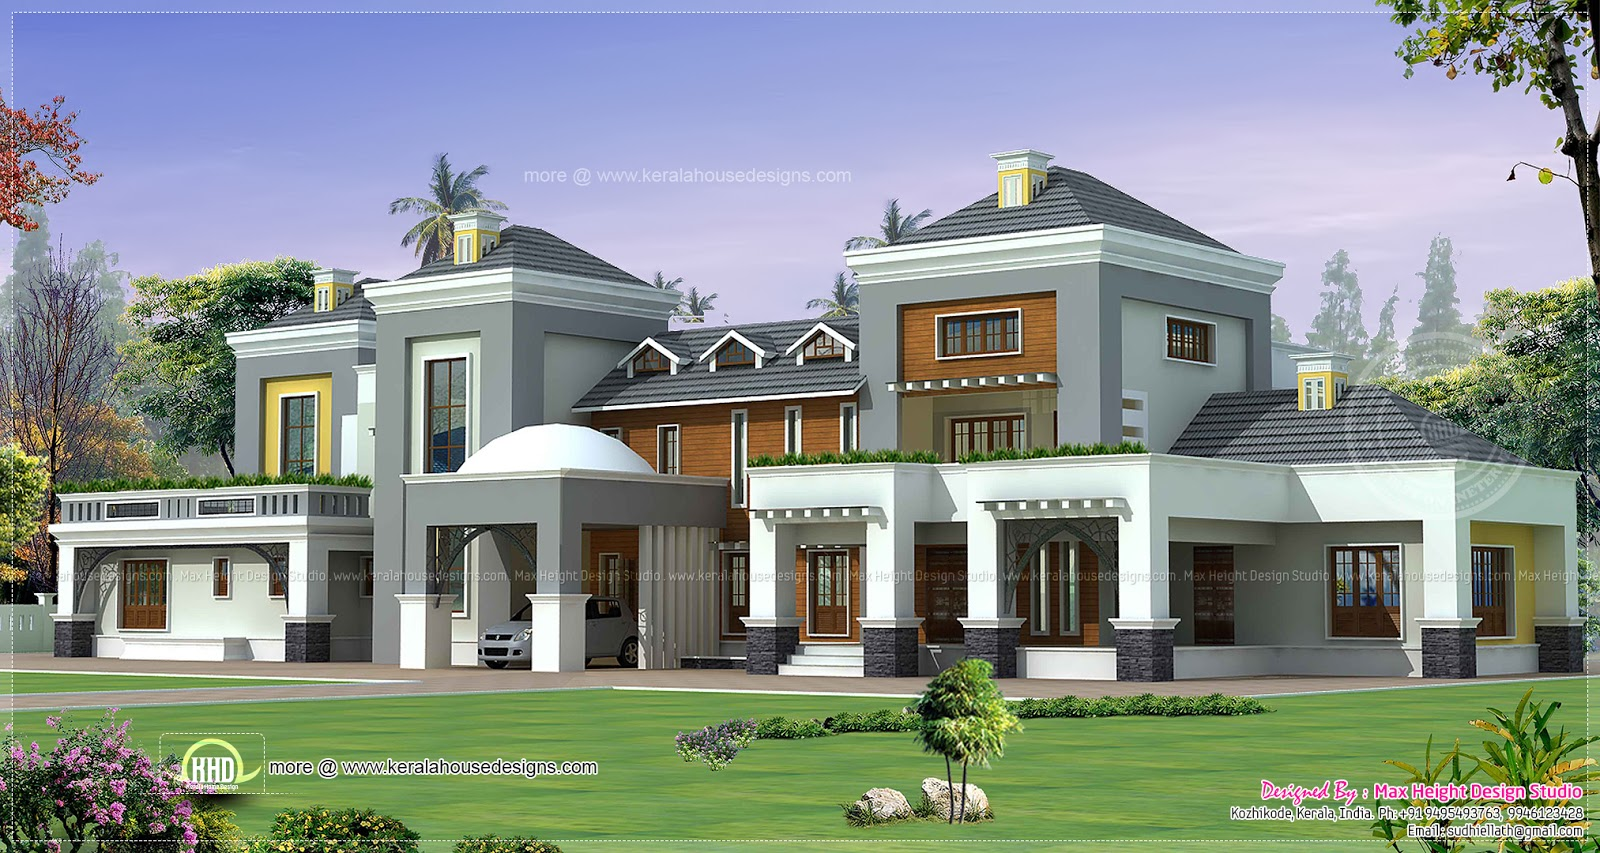 Luxury house plan with photo - Kerala home design and ...